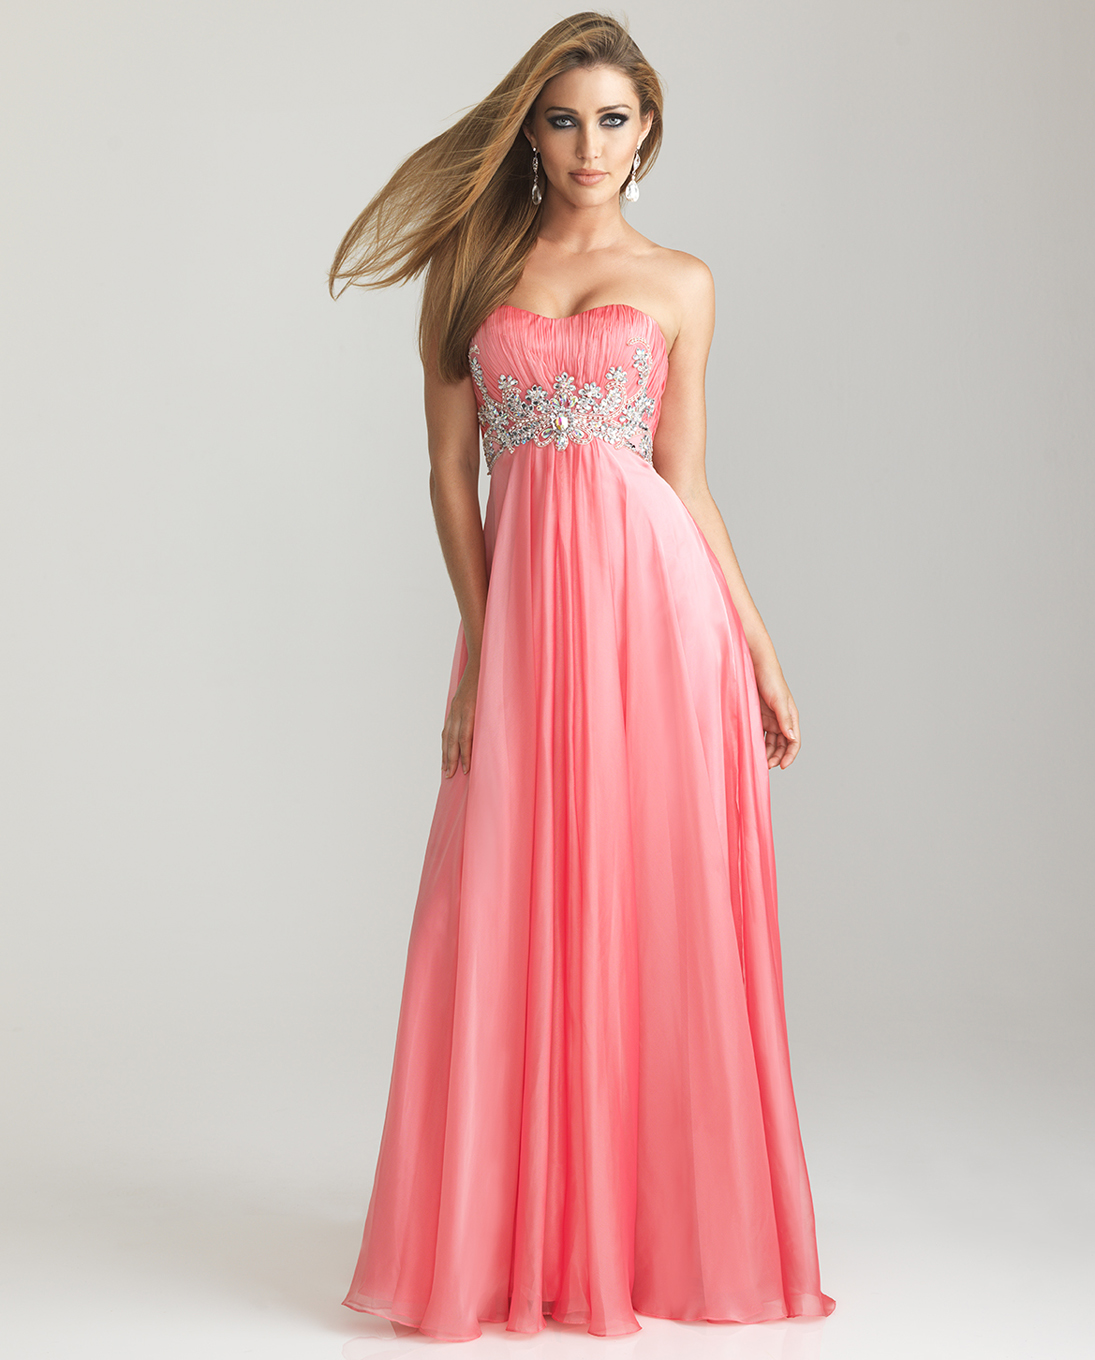 Prom Dresses For Teens | Cocktail Dresses 2016